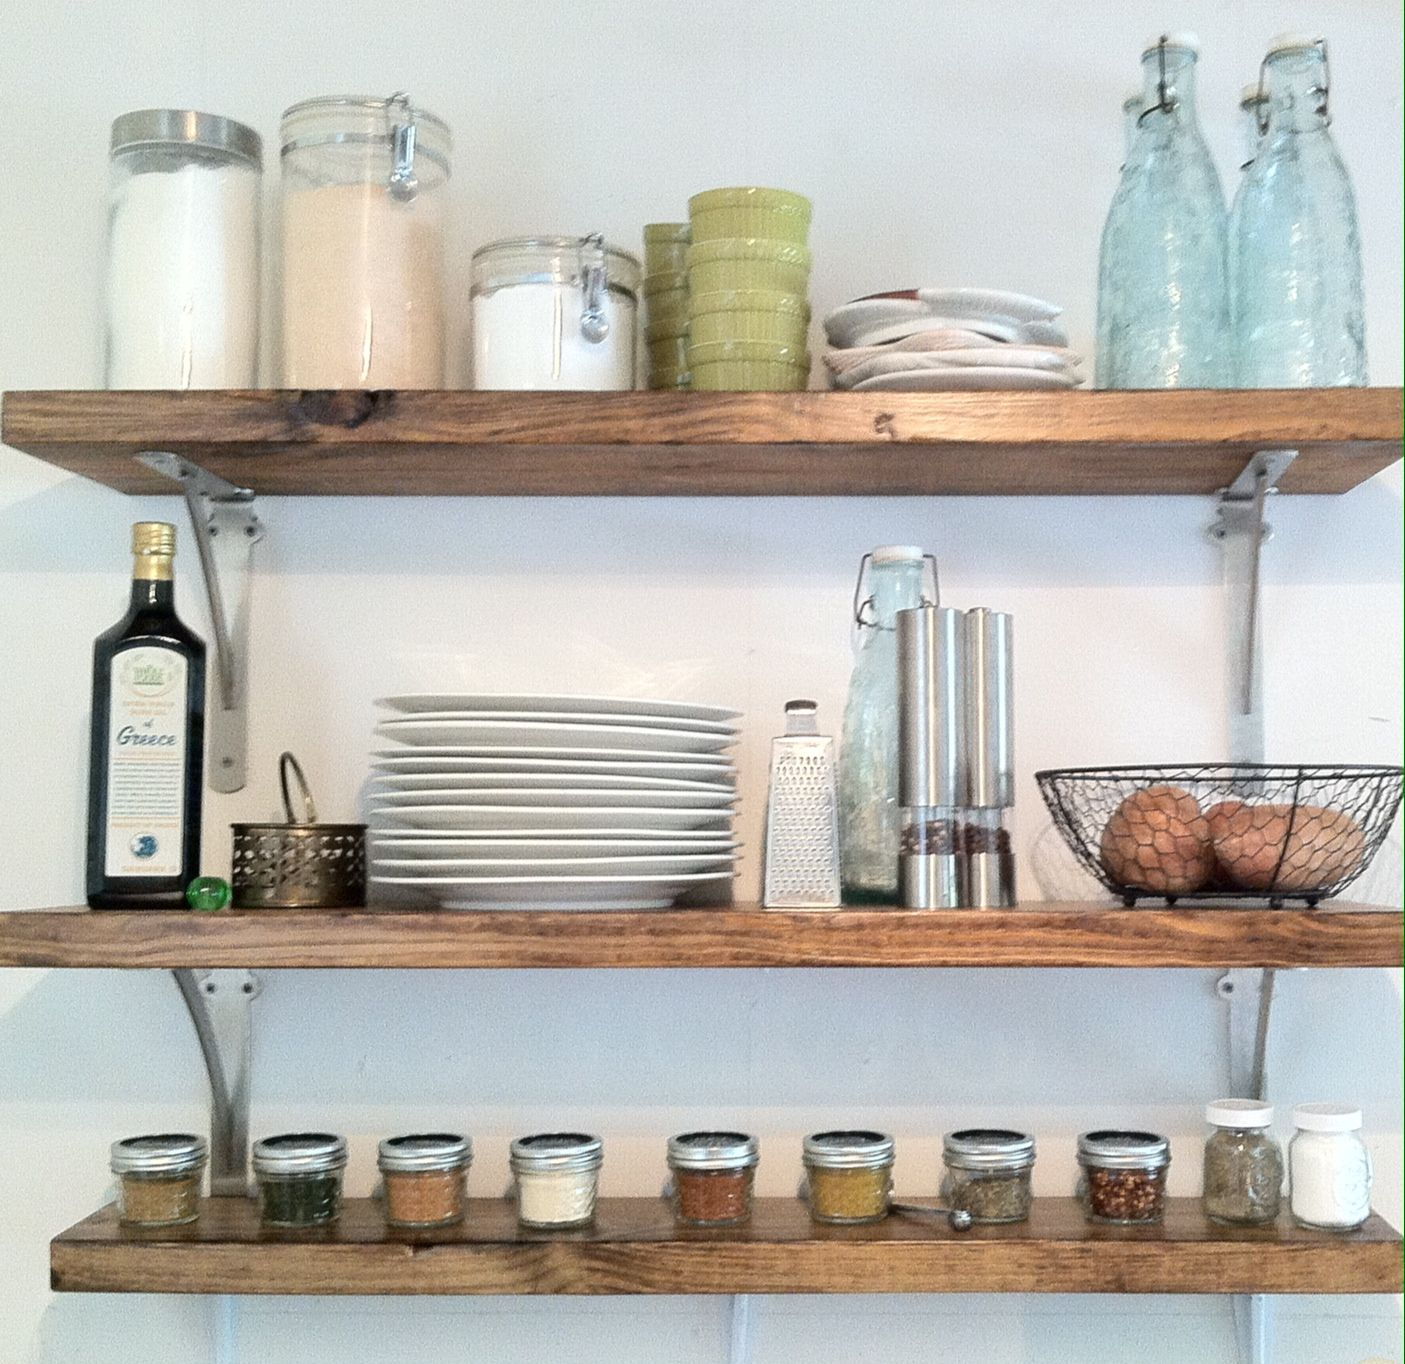 Diy Rustic Chic Wooden Kitchen Shelves Above Stove The Tops Of The Mason Jars Were Painted With Chalk Paint Wooden Shelves Kitchen Stove Decor Kitchen Shelves